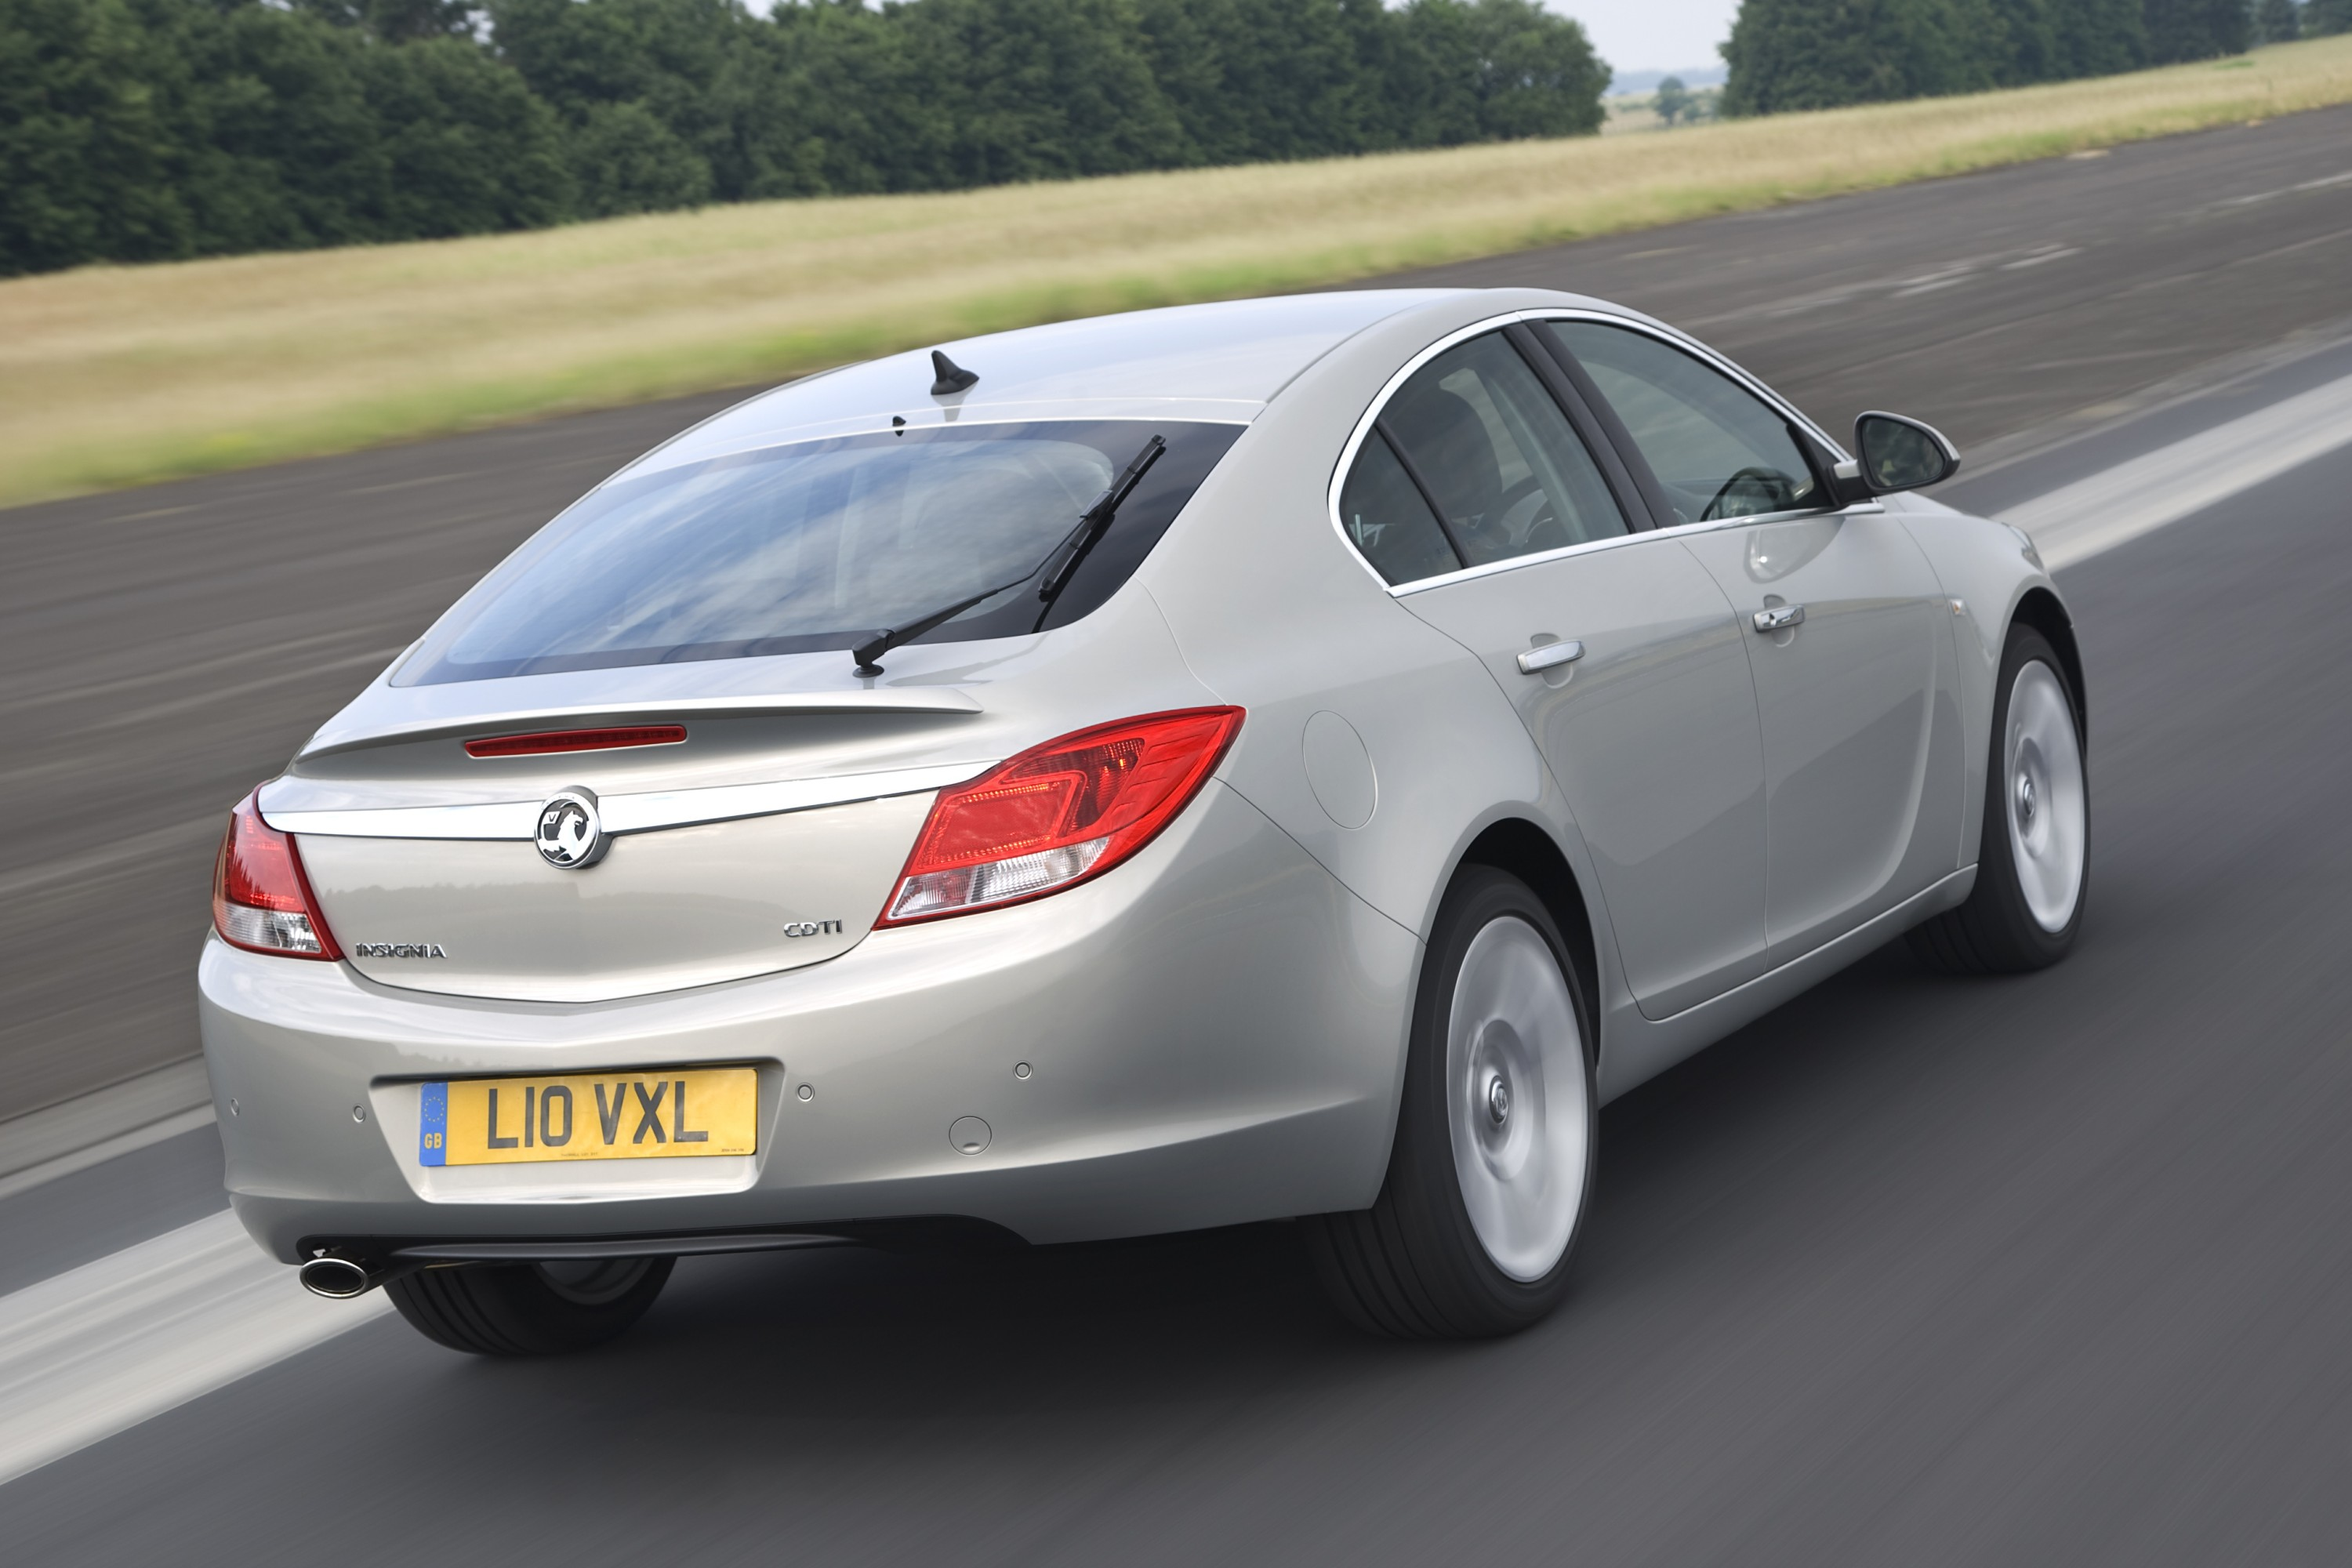 vauxhall insignia voted car of the year 2009. Black Bedroom Furniture Sets. Home Design Ideas